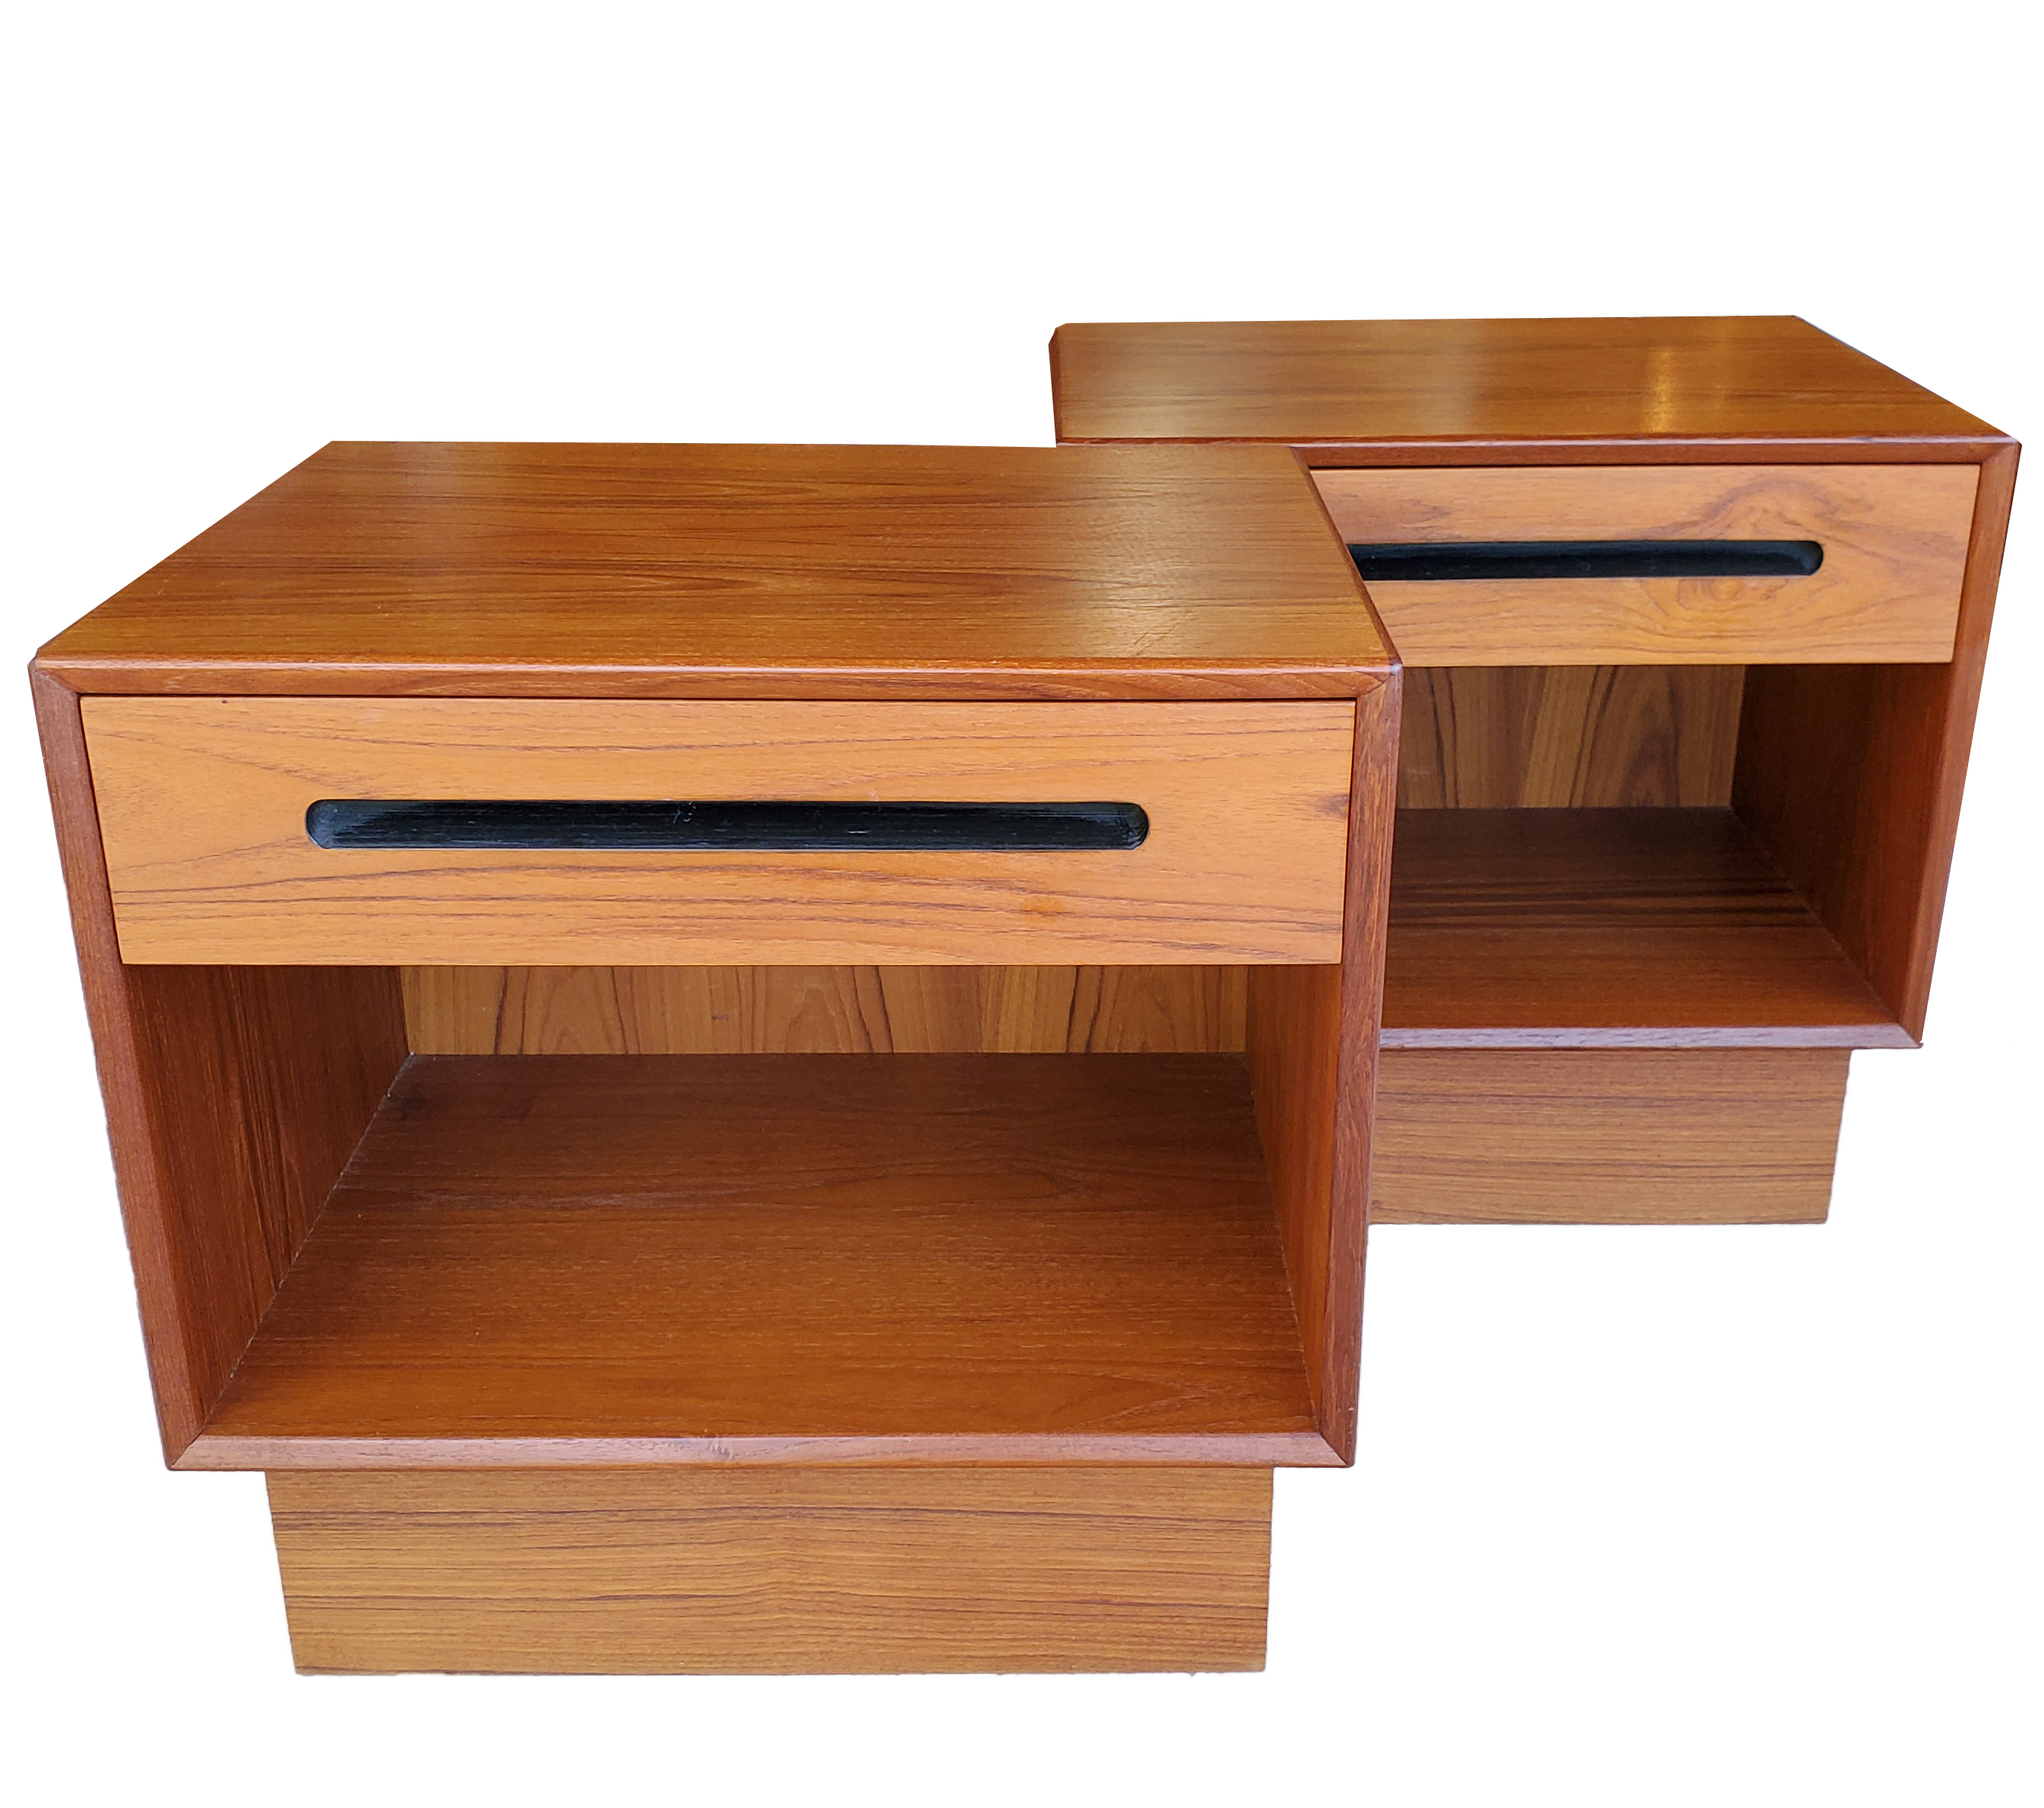 westnofa-side-tables-lg.jpg